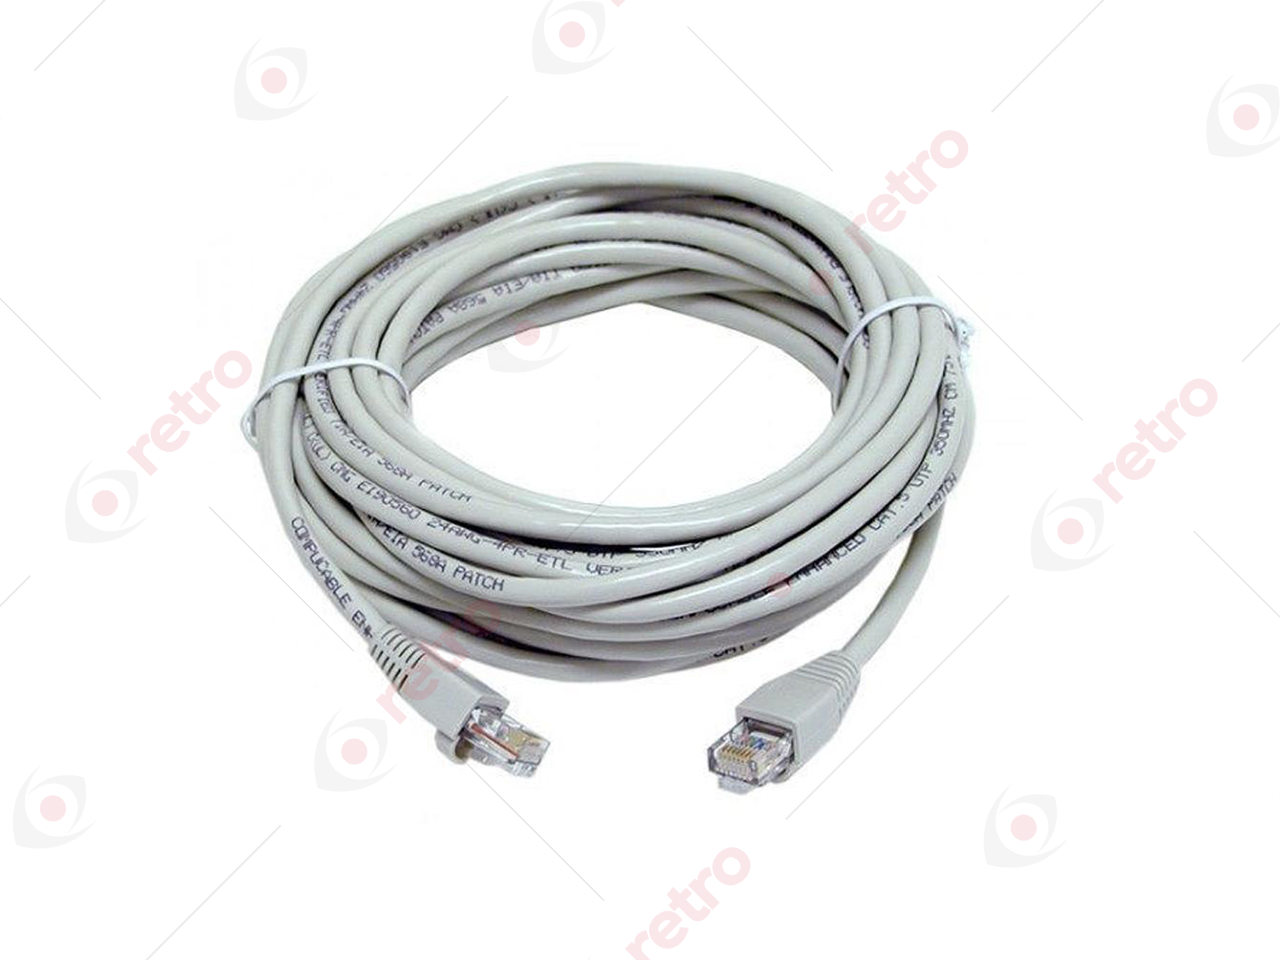 1.5MT CAT6 23AWG BAKIR (PATCH CORD)KABLO